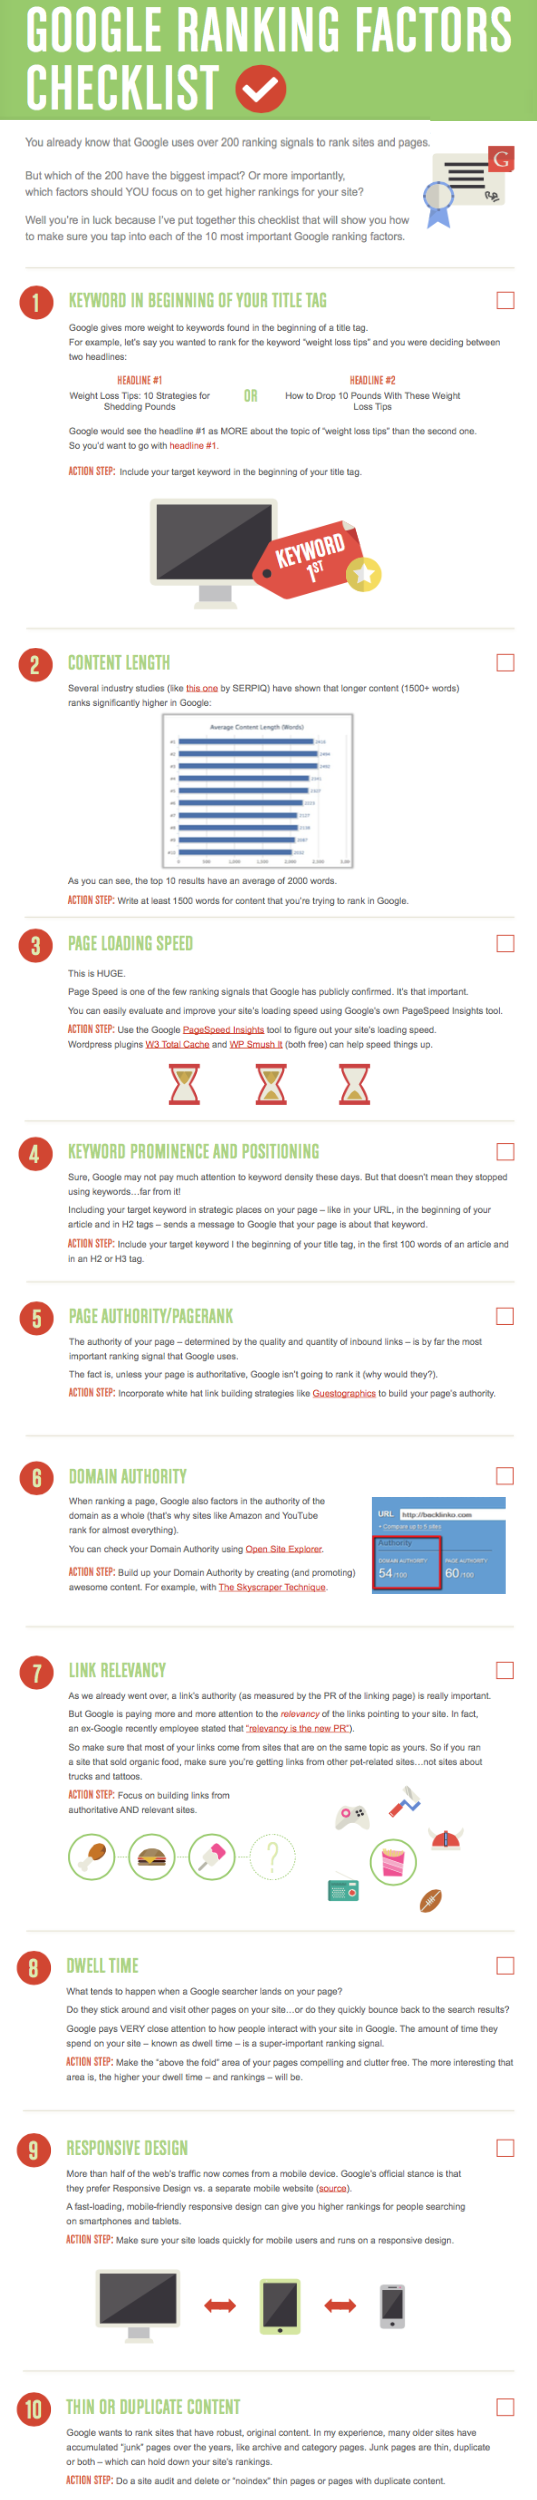 Google Ranking Factors Checklist infographic.png